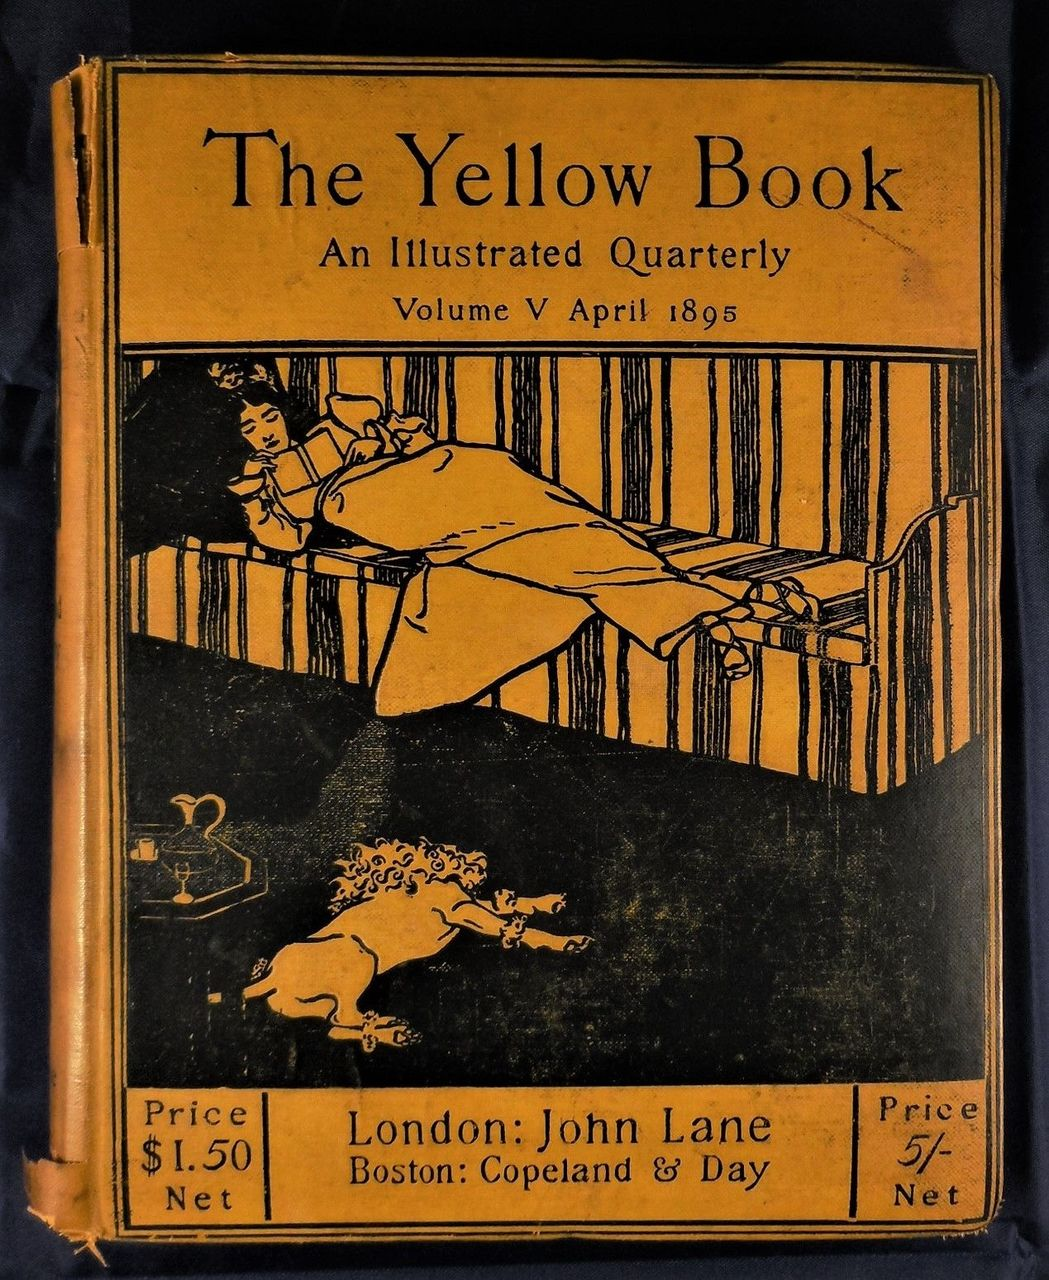 THE YELLOW BOOK, Vol. 5, An Illustrated Quarterly - 1895